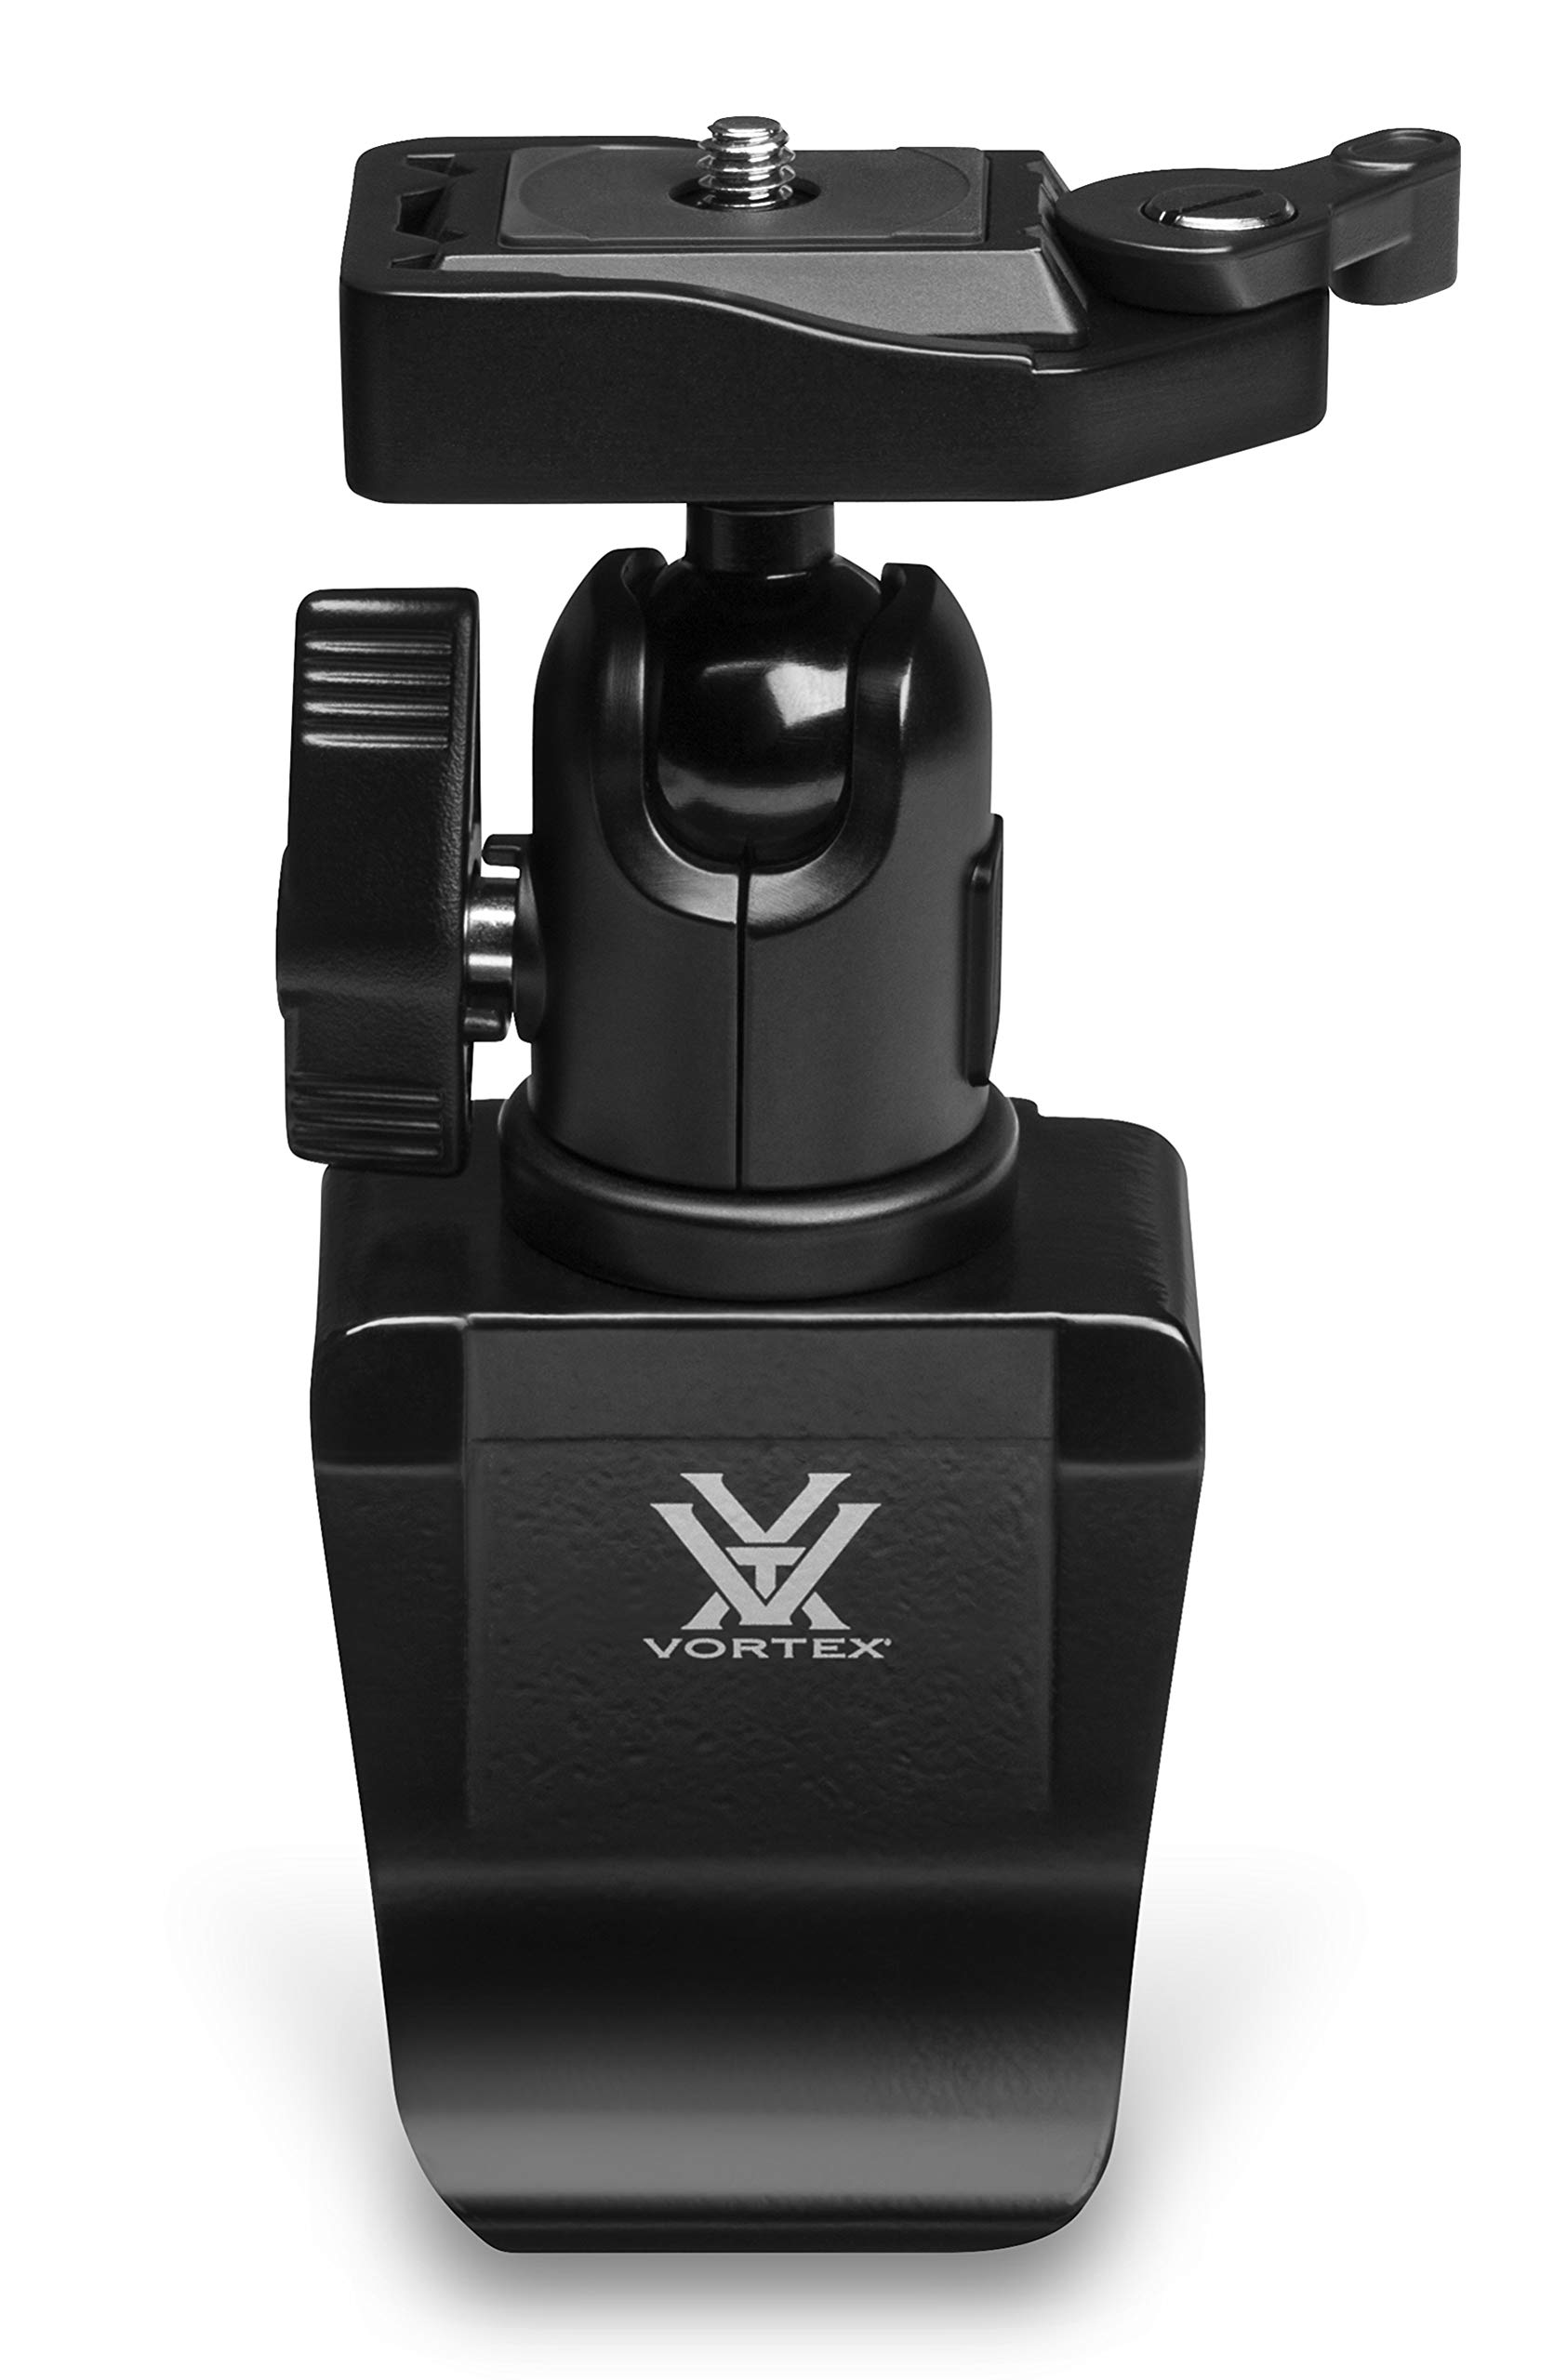 Vortex Optics Summit Window Mount